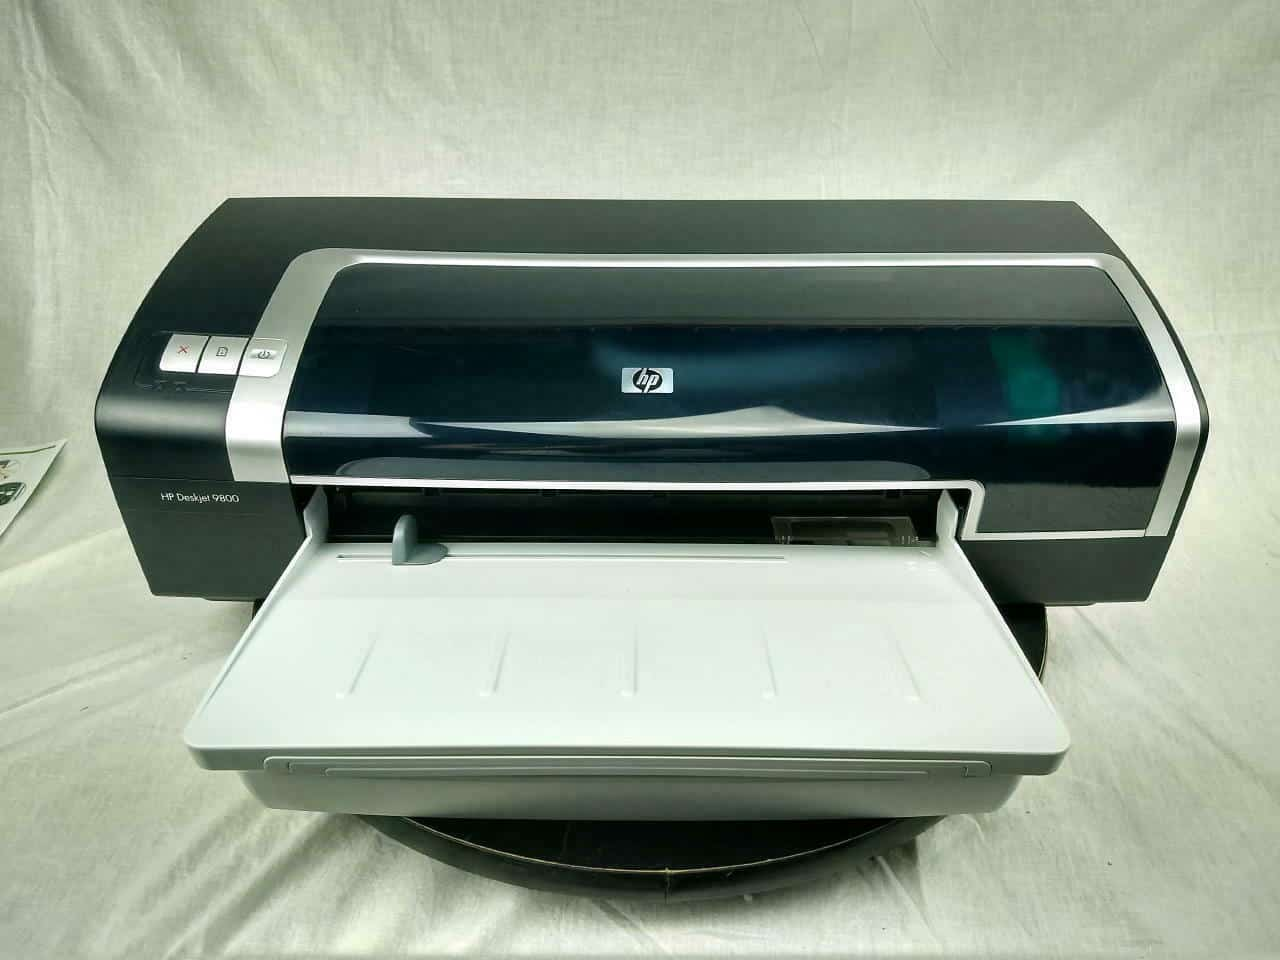 hp deskjet printer 9800